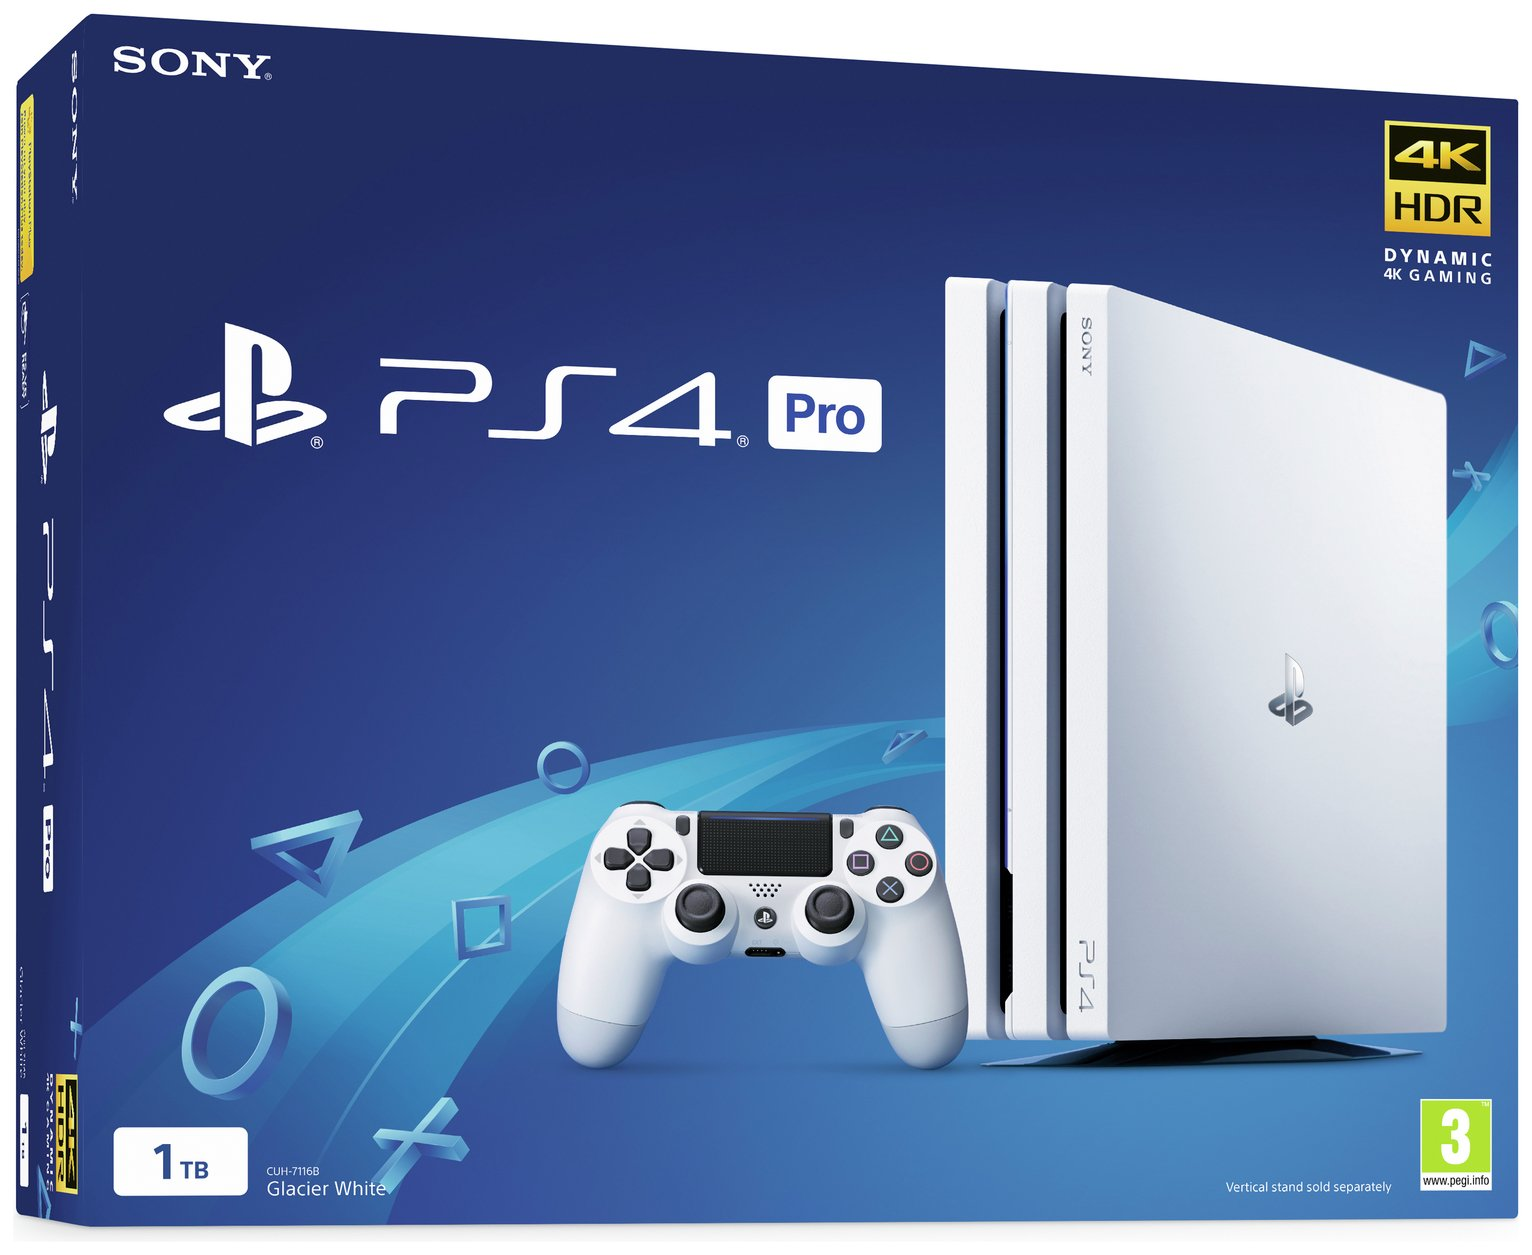 Sony PS4 Pro 1TB Console - White